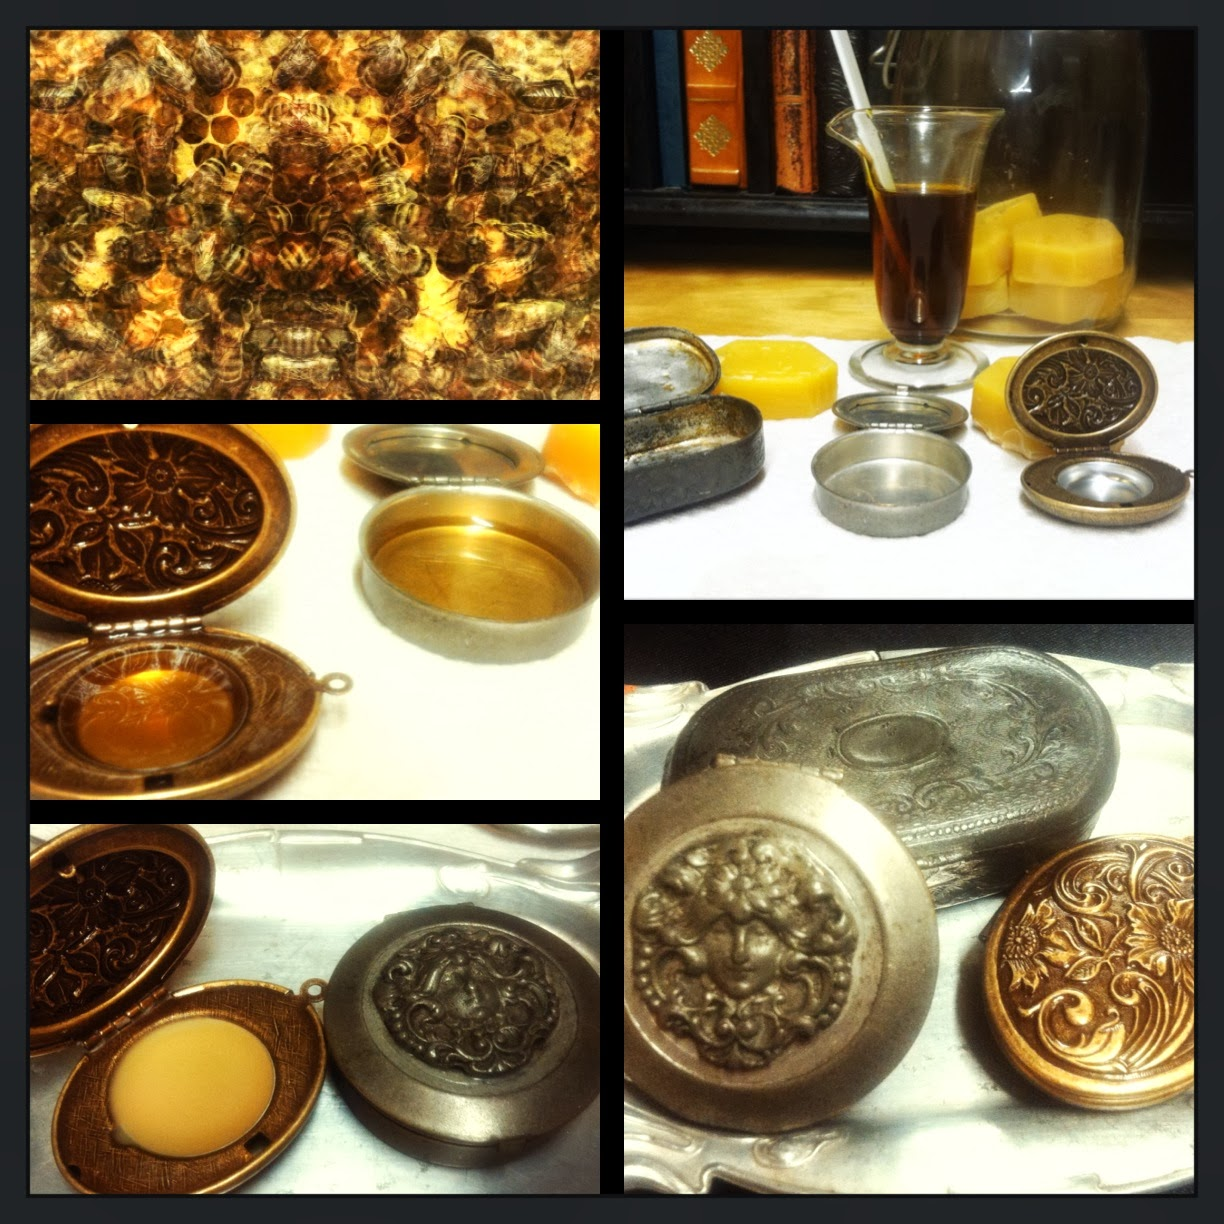 Customized Solid Perfume in Vintage Art Deco Glamour Compact